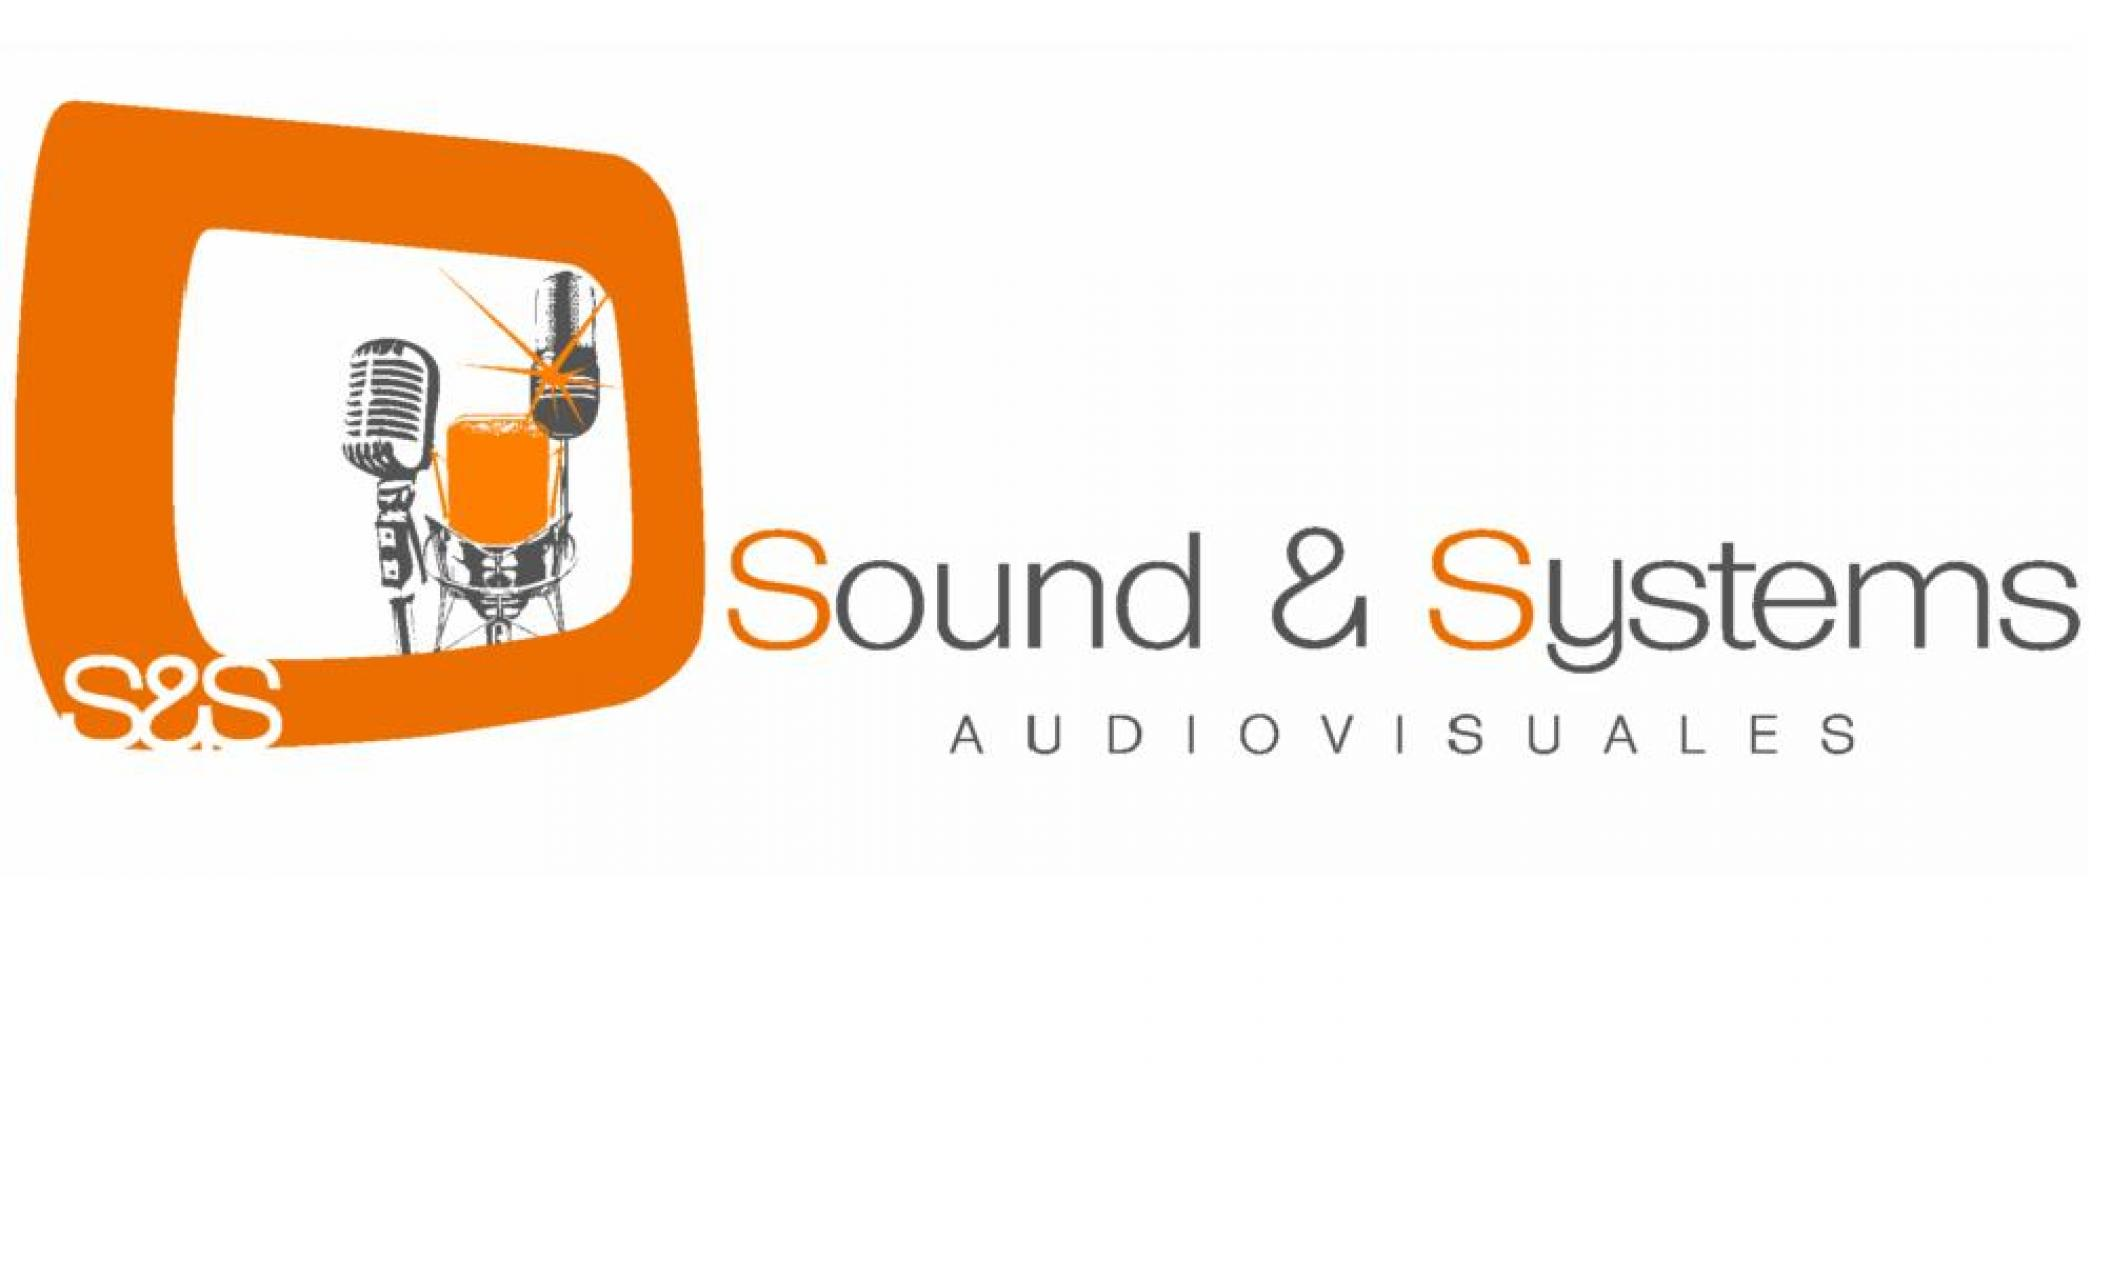 SOUND & SYSTEMS AUDIOVISUALES